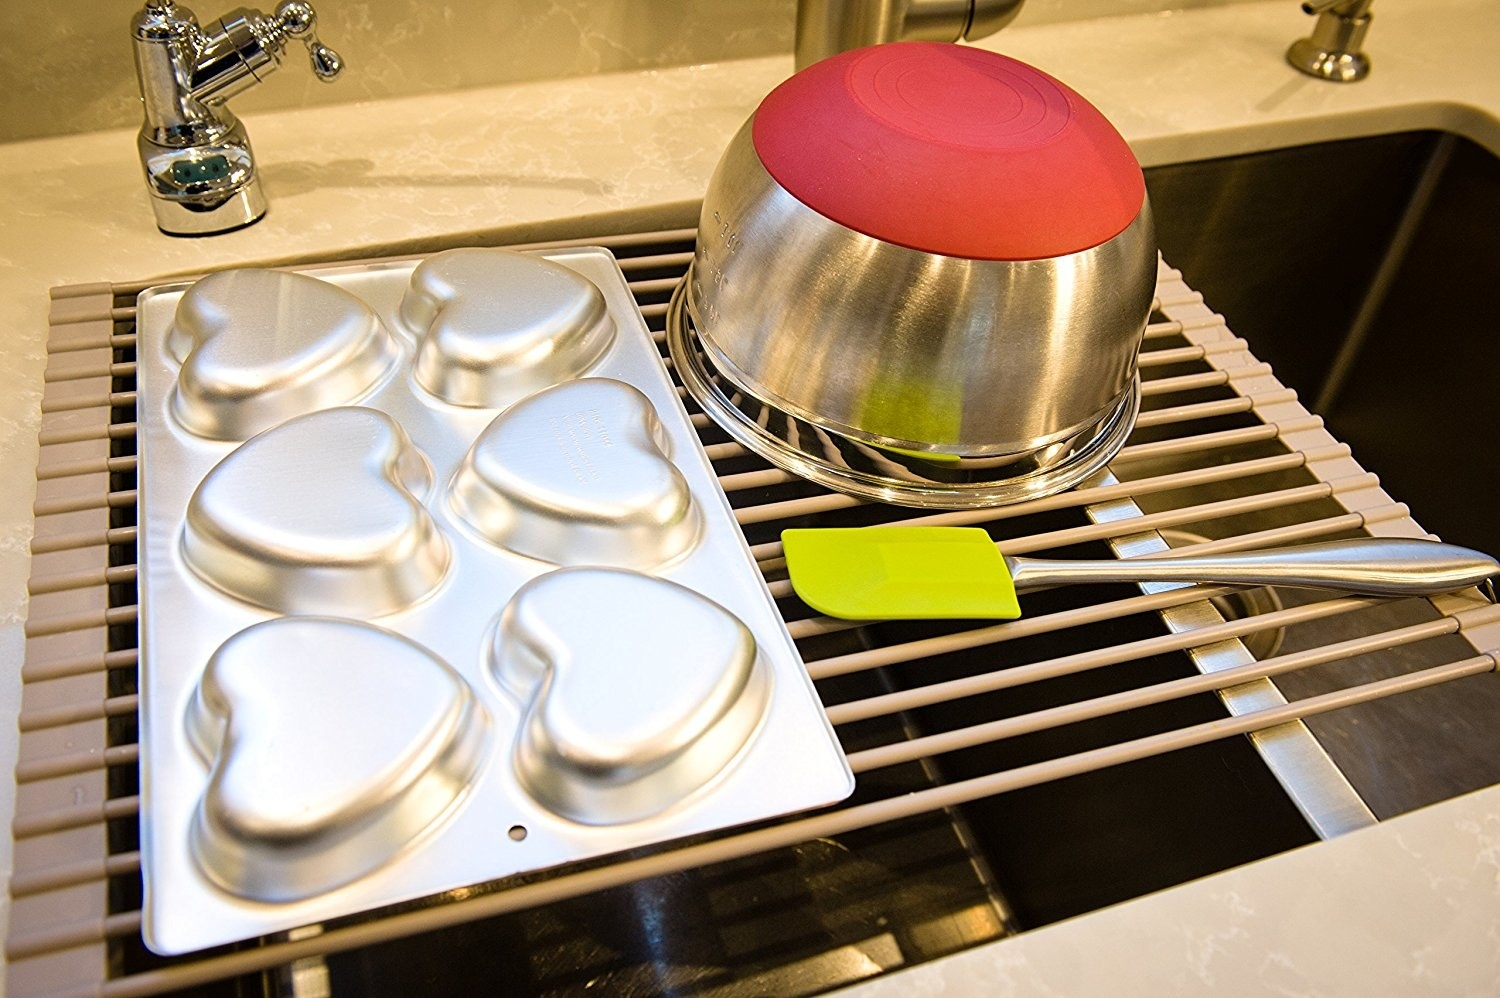 A pot and pan drying on the rack